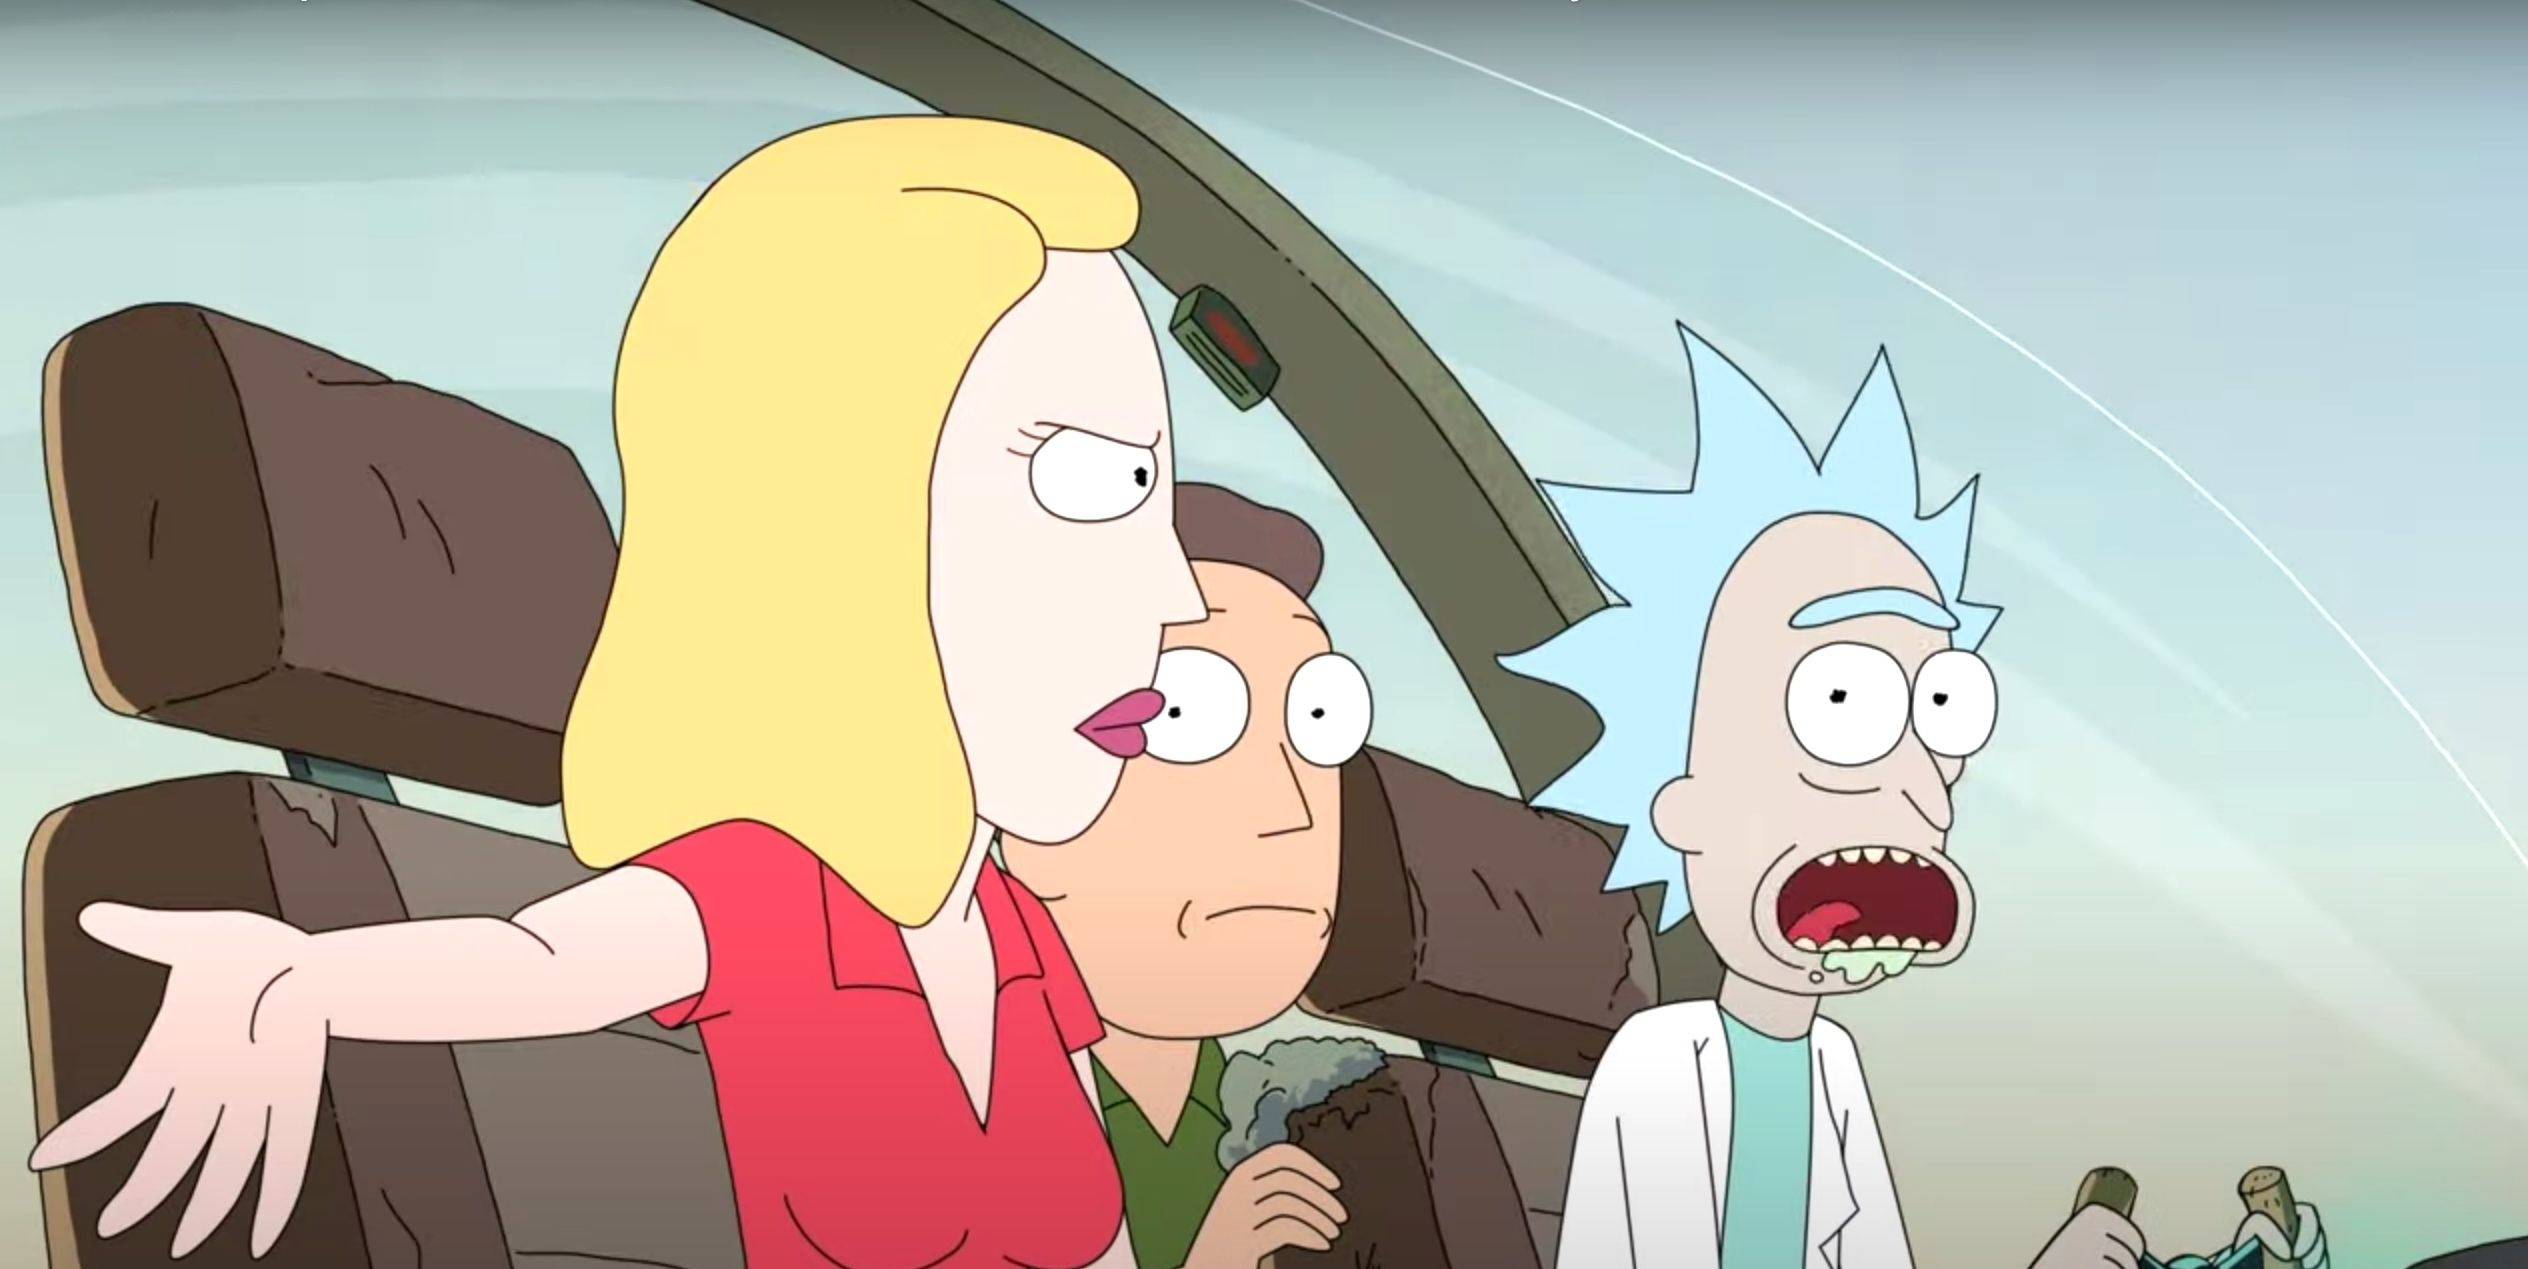 Rick and Morty's season 4 finale sets up big changes for season 5 - digitalspy.com